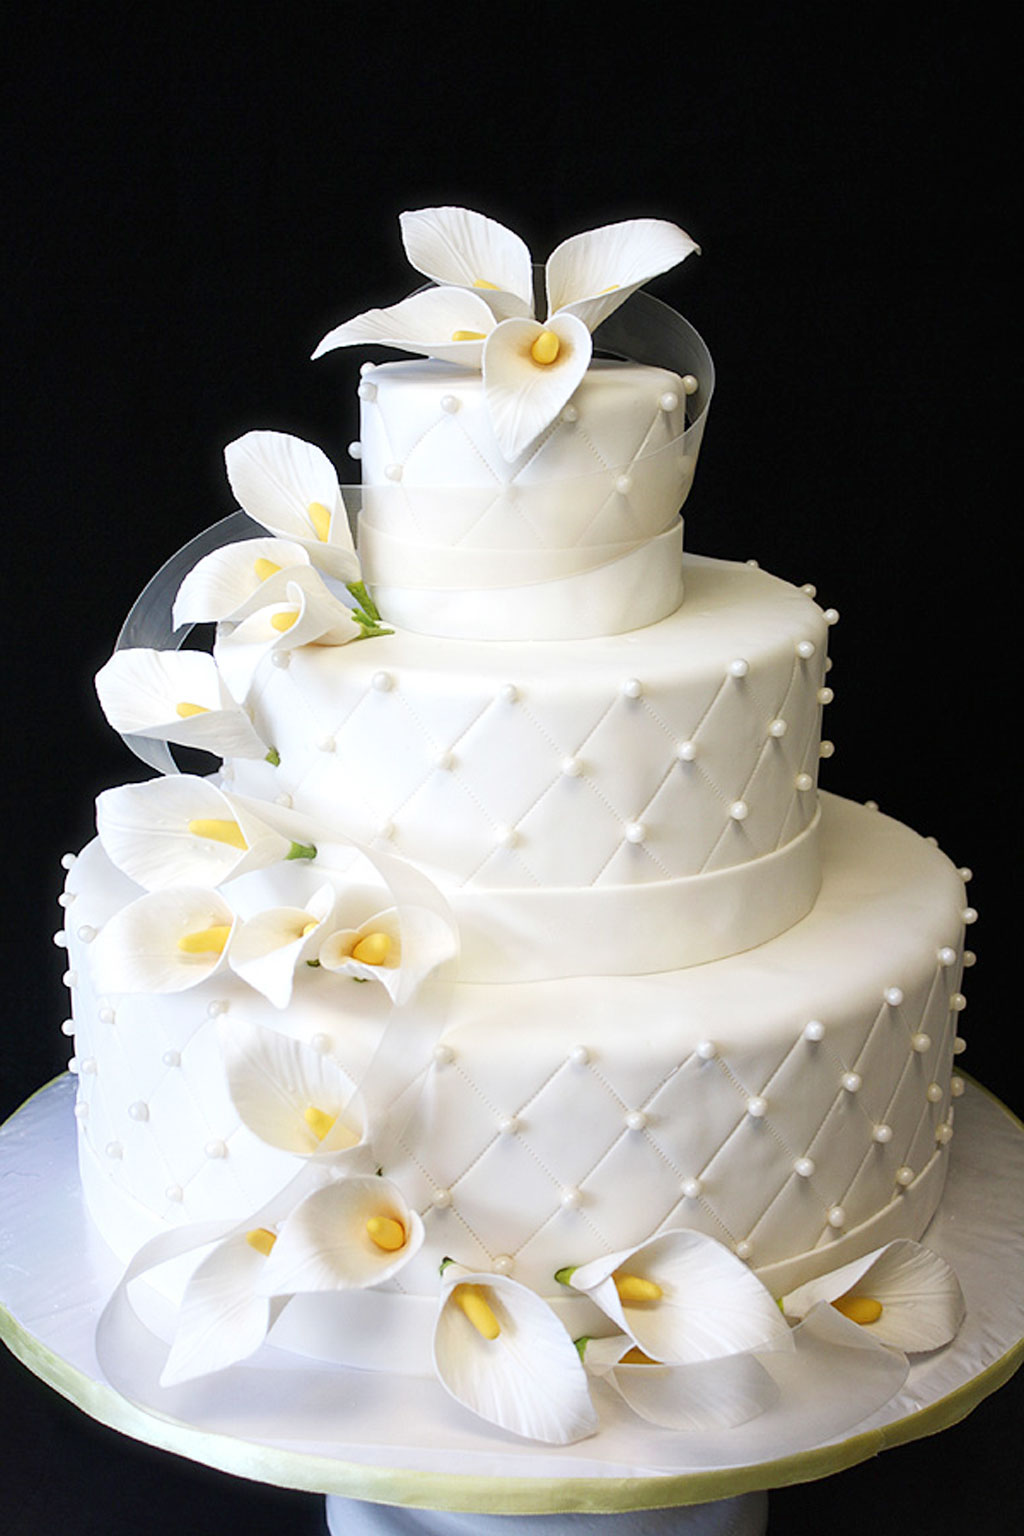 calla lily wedding cakes pictures wedding cake with calla lilies wedding cake cake ideas 12326